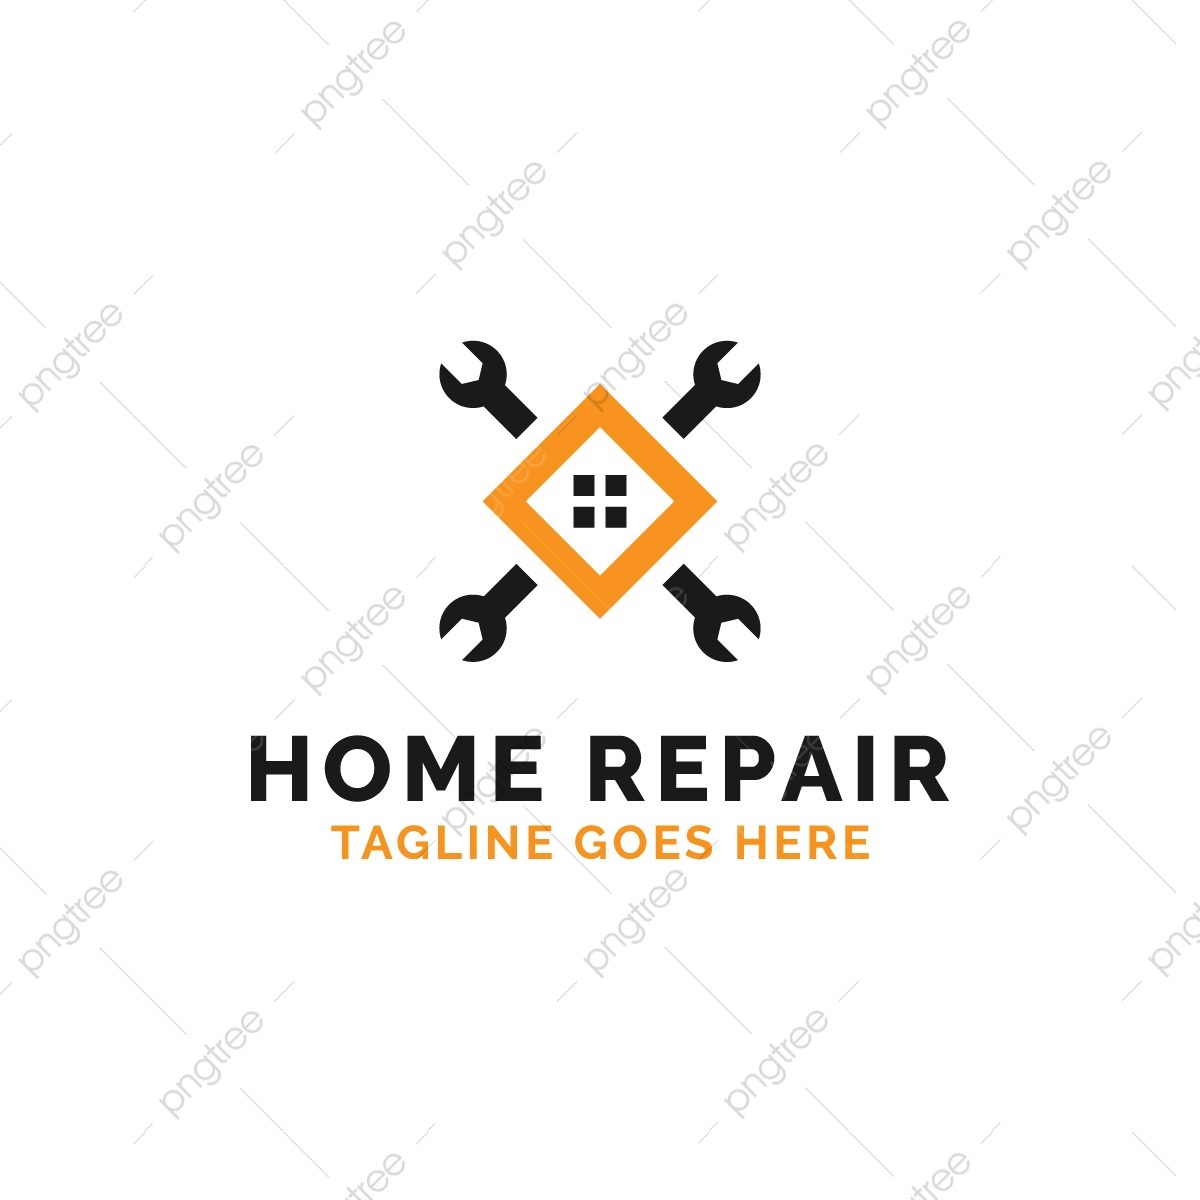 Home Repair Png Vector Psd And Clipart With Transparent Background For Free Download Pngtree